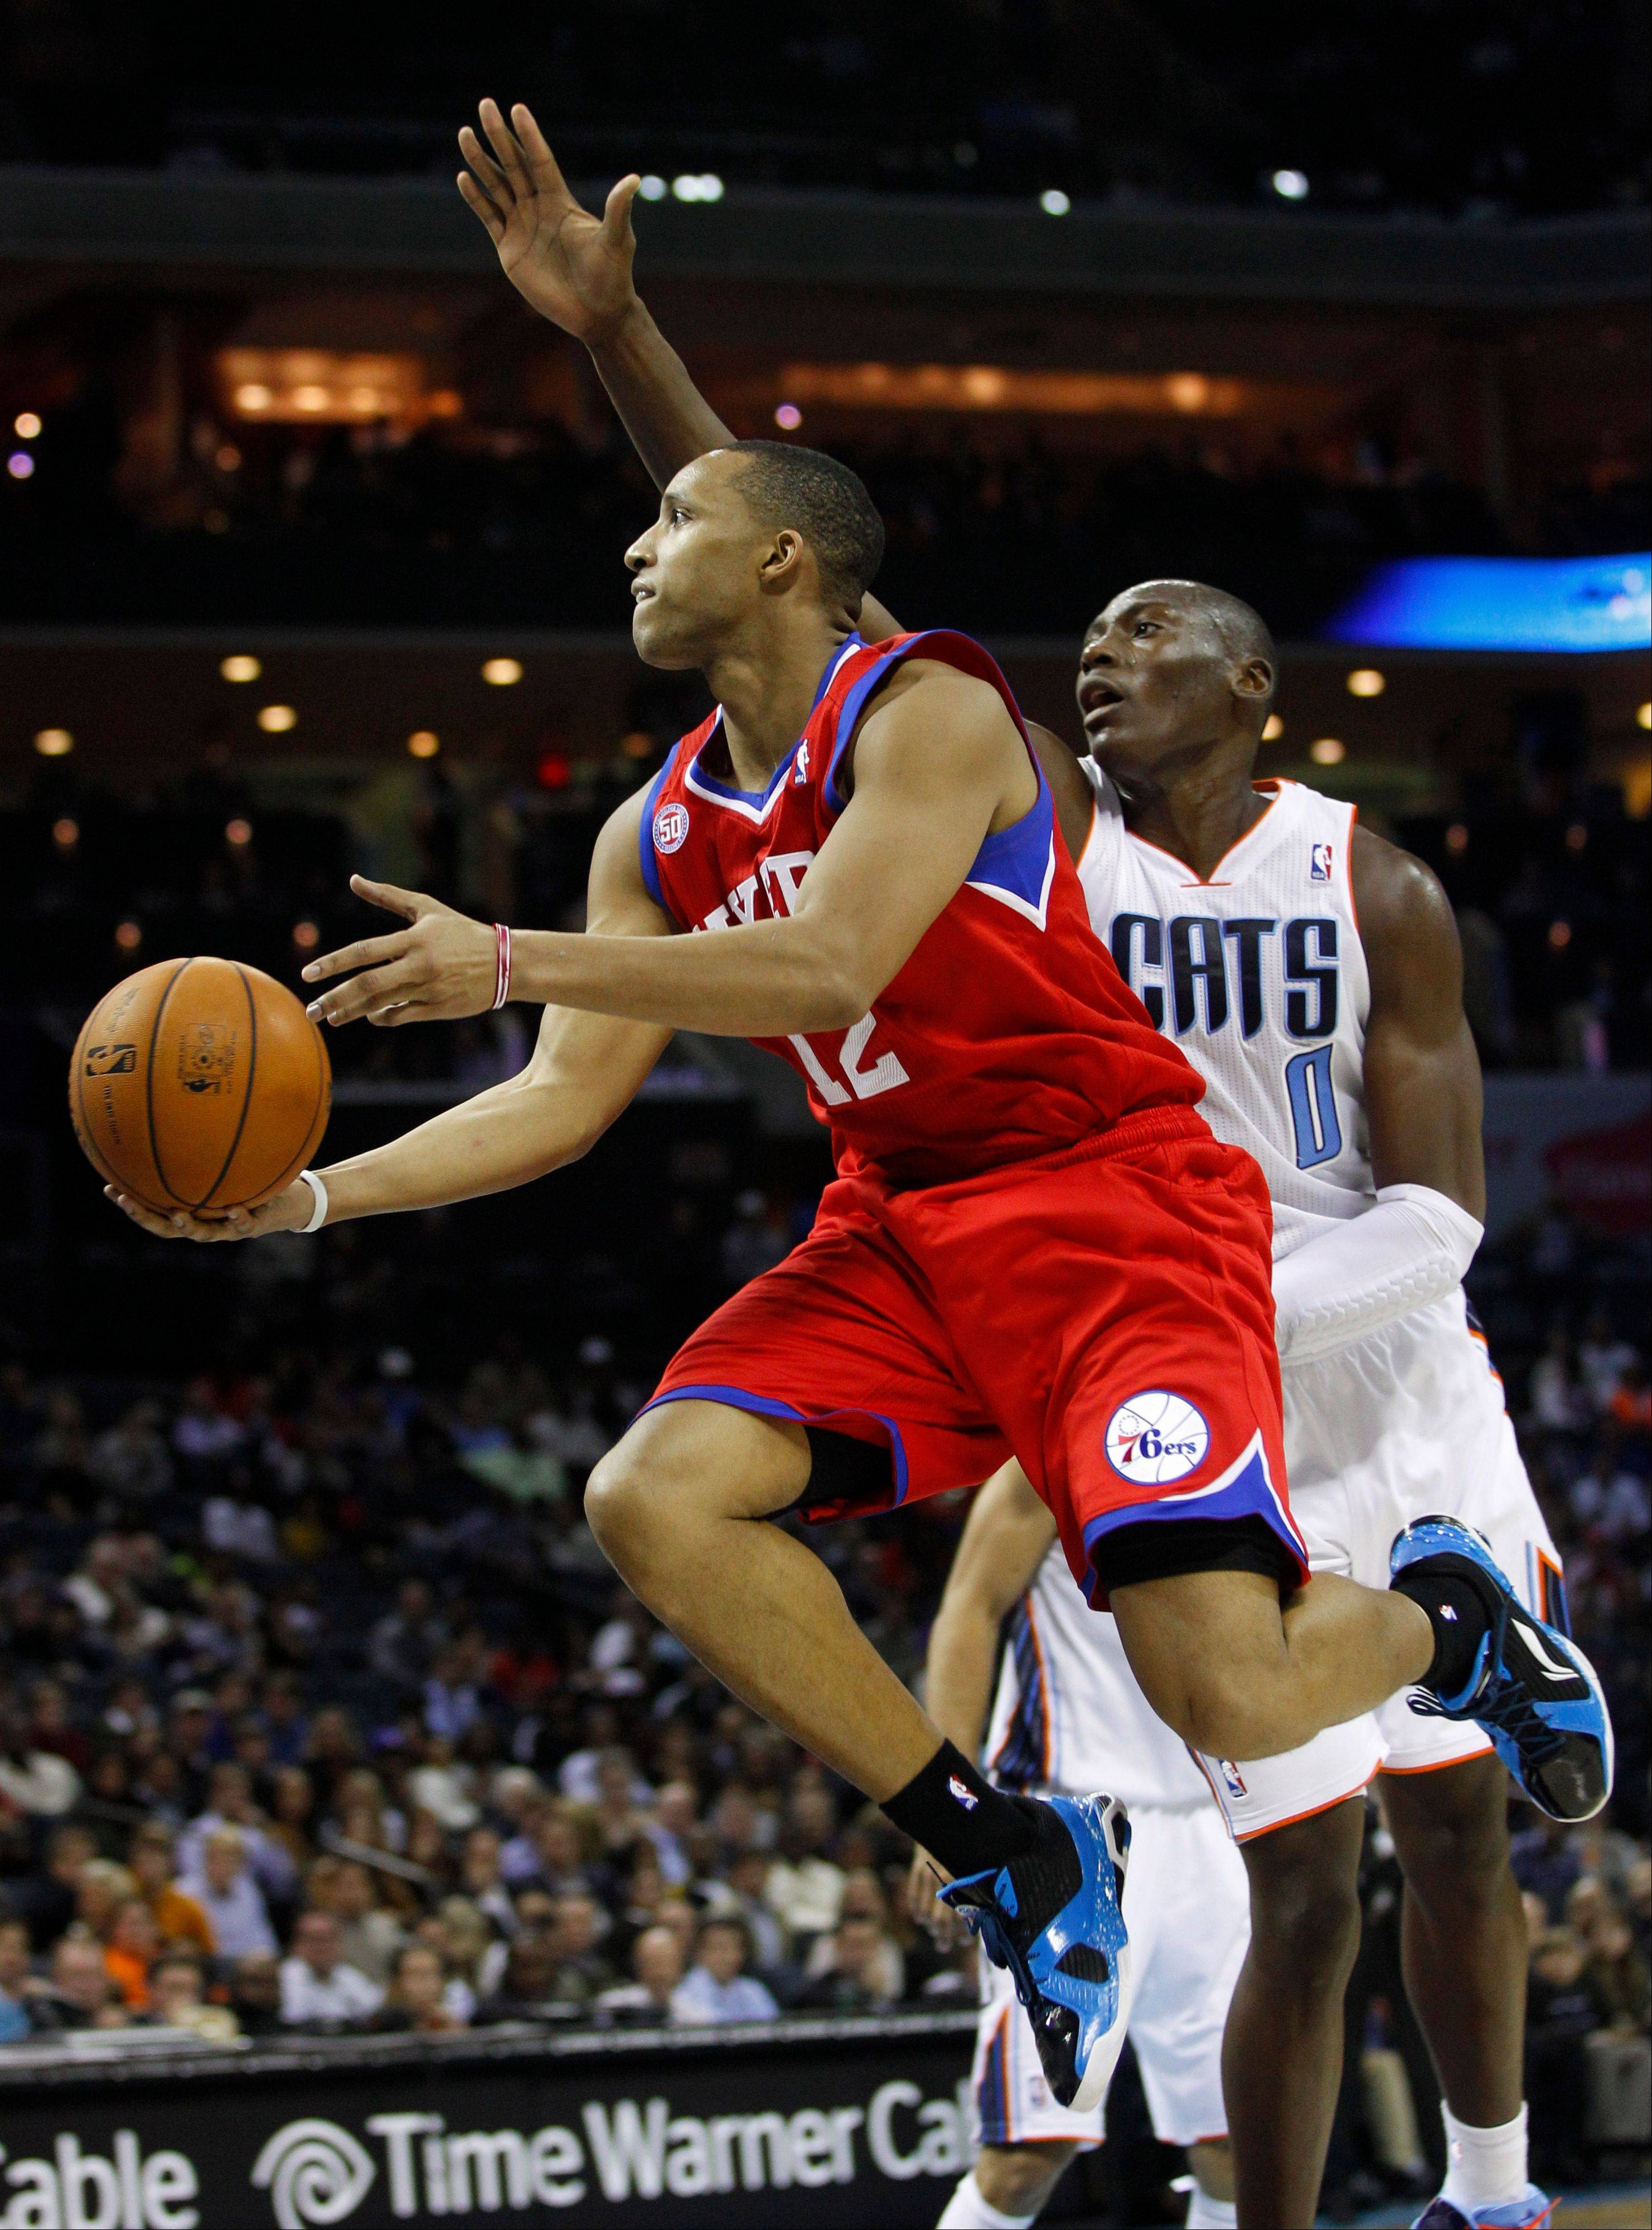 The Philadelphia 76ers' Evan Turner drives past the Charlotte Bobcats' Bismack Biyombo Friday during the second half in Charlotte, N.C. Philadelphia won 104-98.